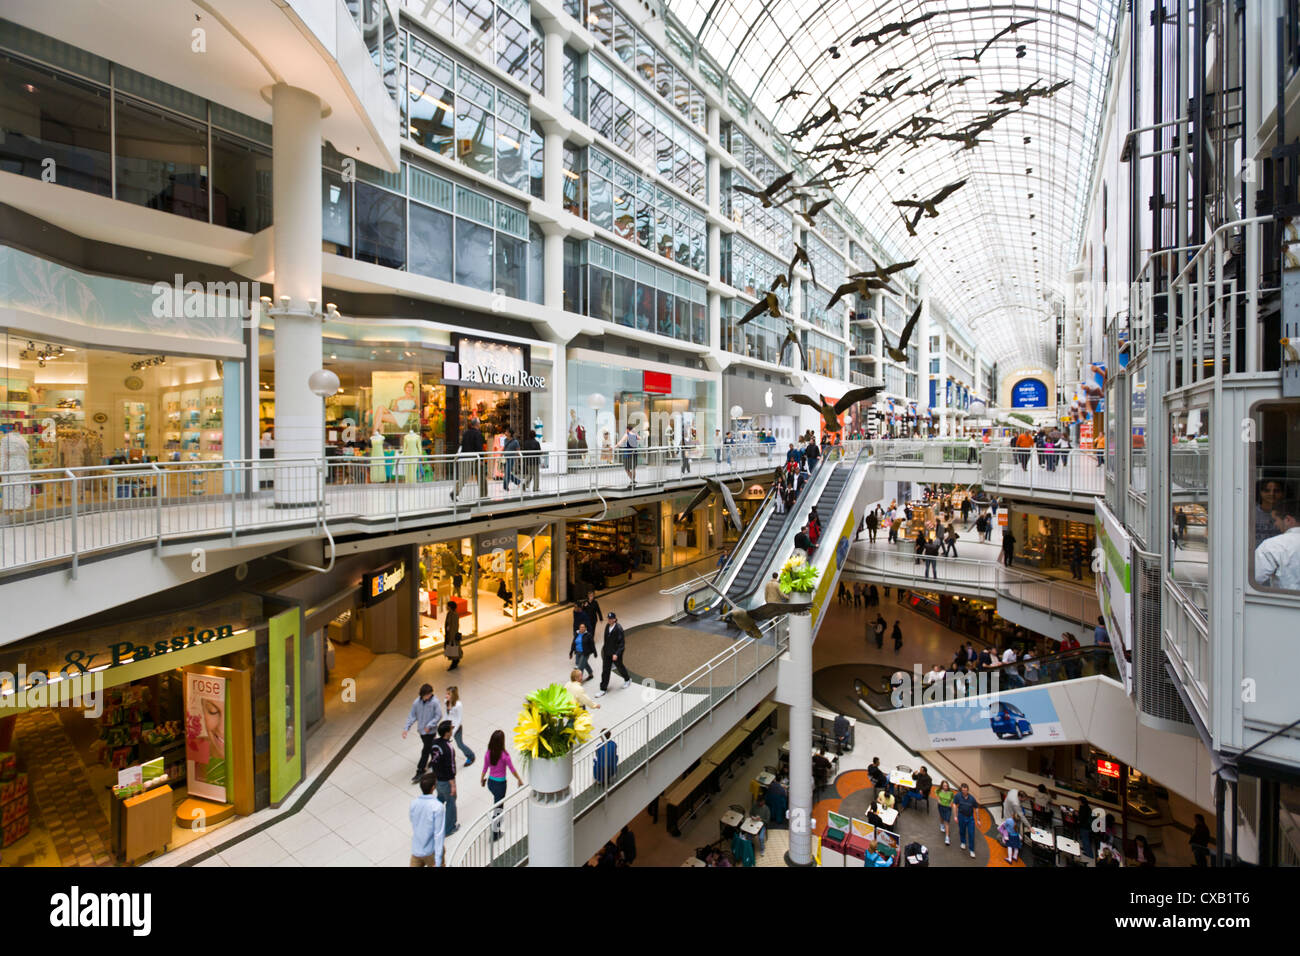 Image Result For Eaton Centre